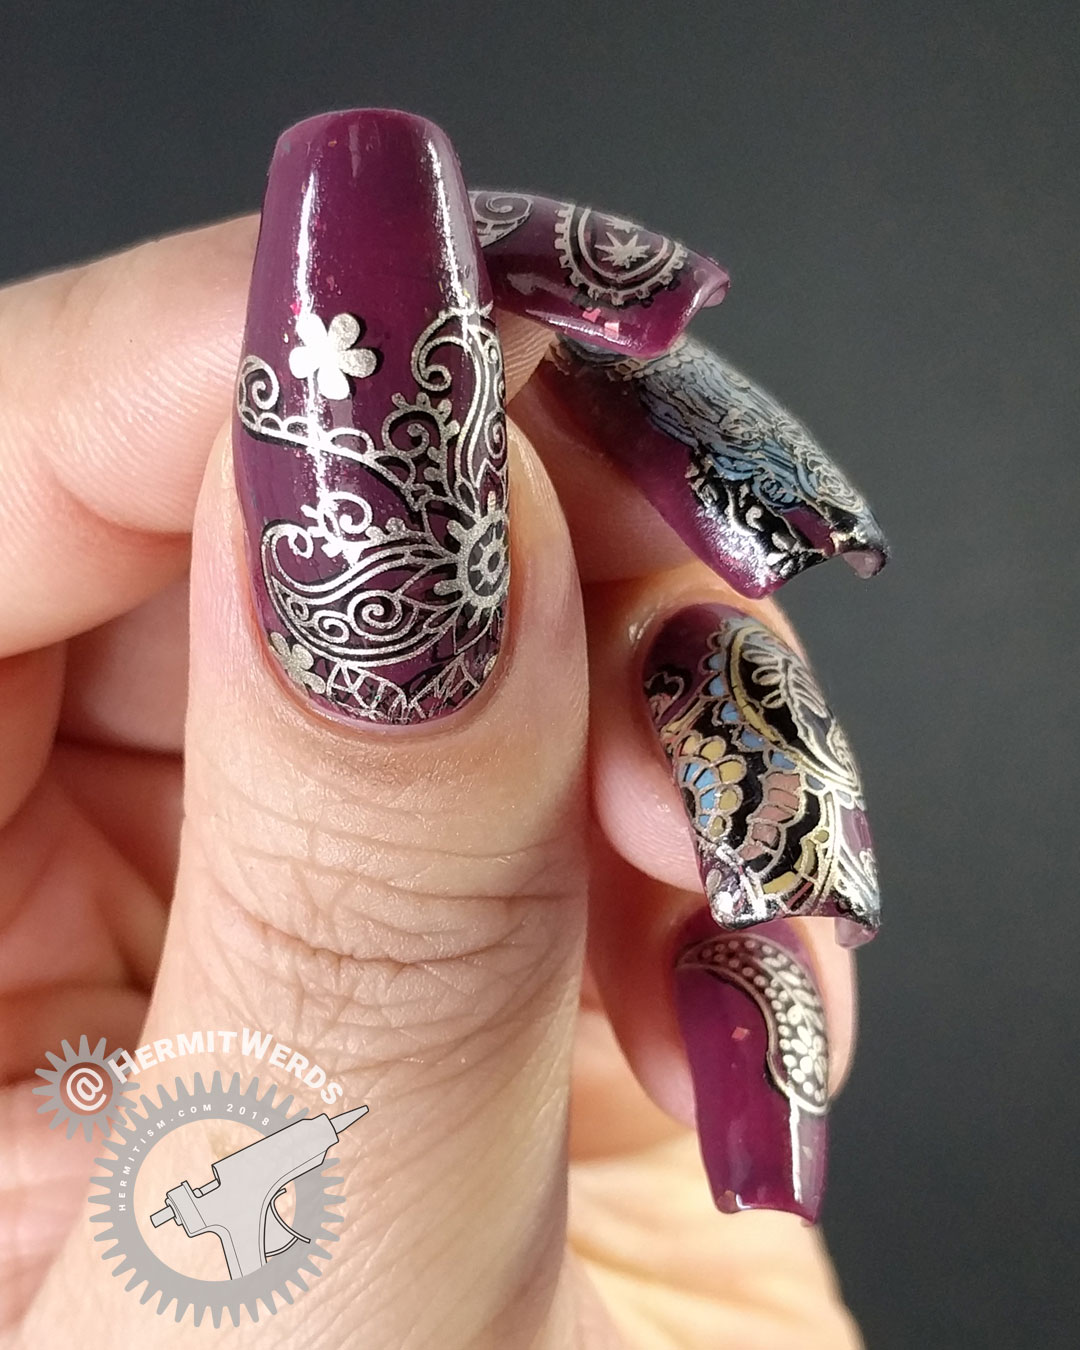 The Fanciest Paisley - Hermit Werds - ornate golden and cranberry paisley nail art